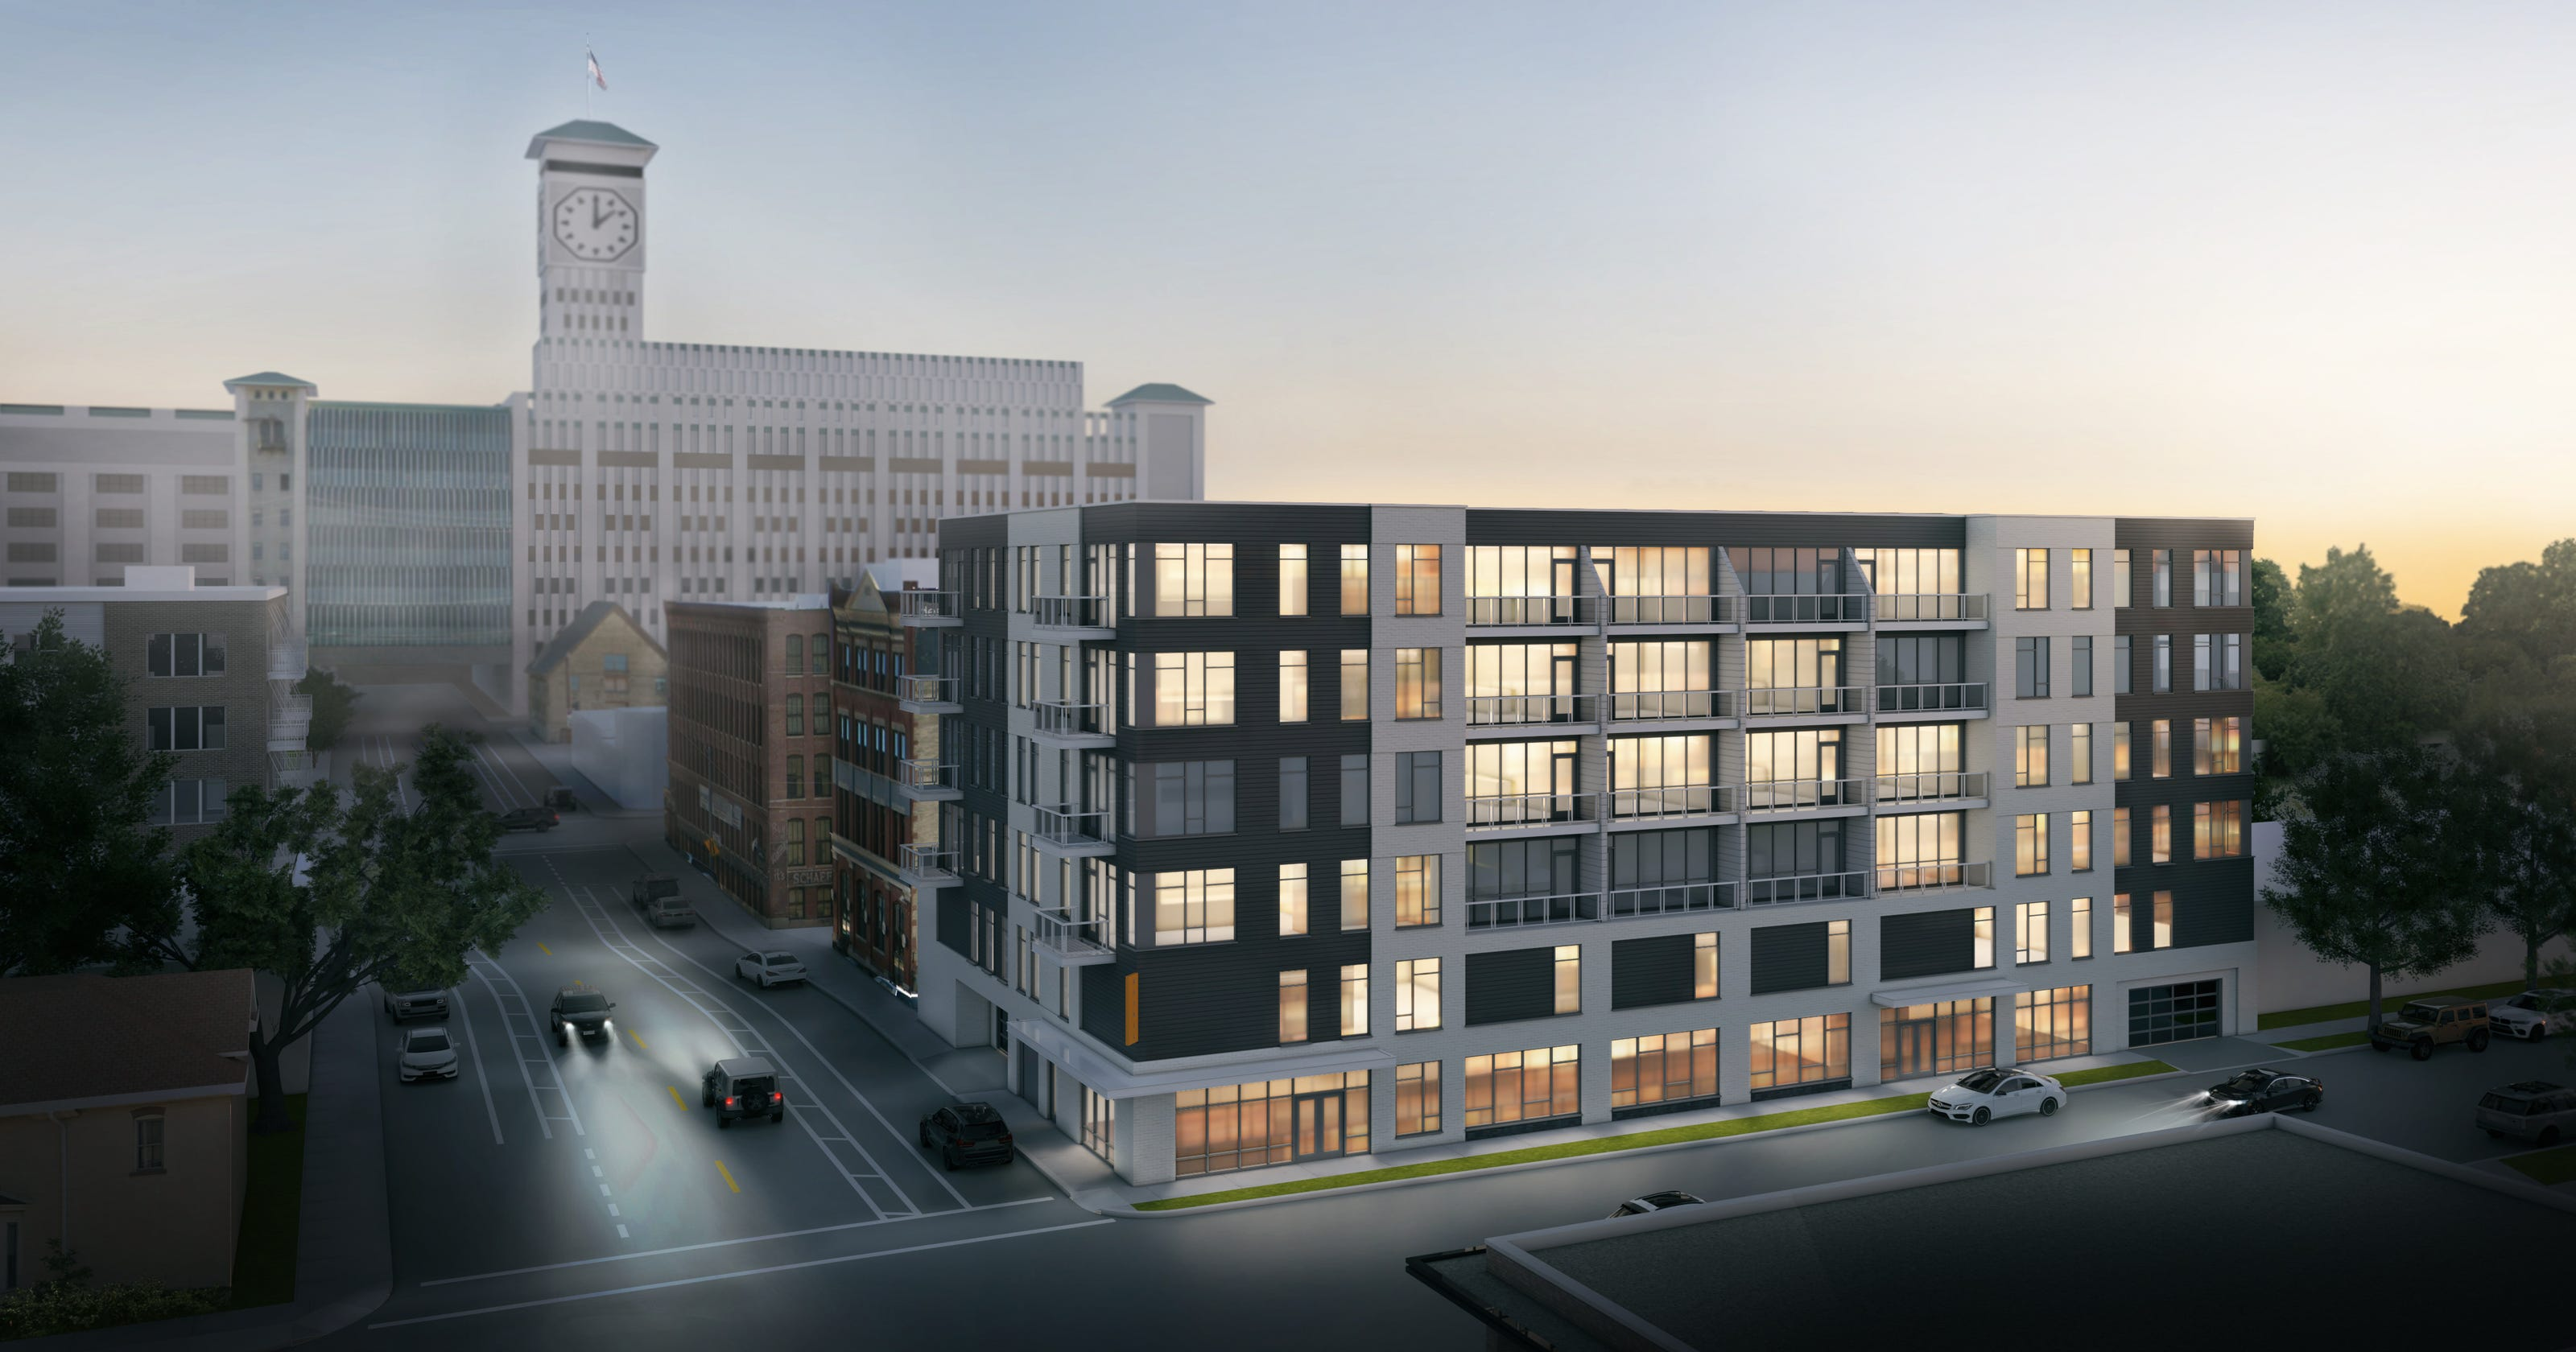 New Land Proposes 48 Unit Apartment Building Near Its Trio Mke Project In Walker S Point